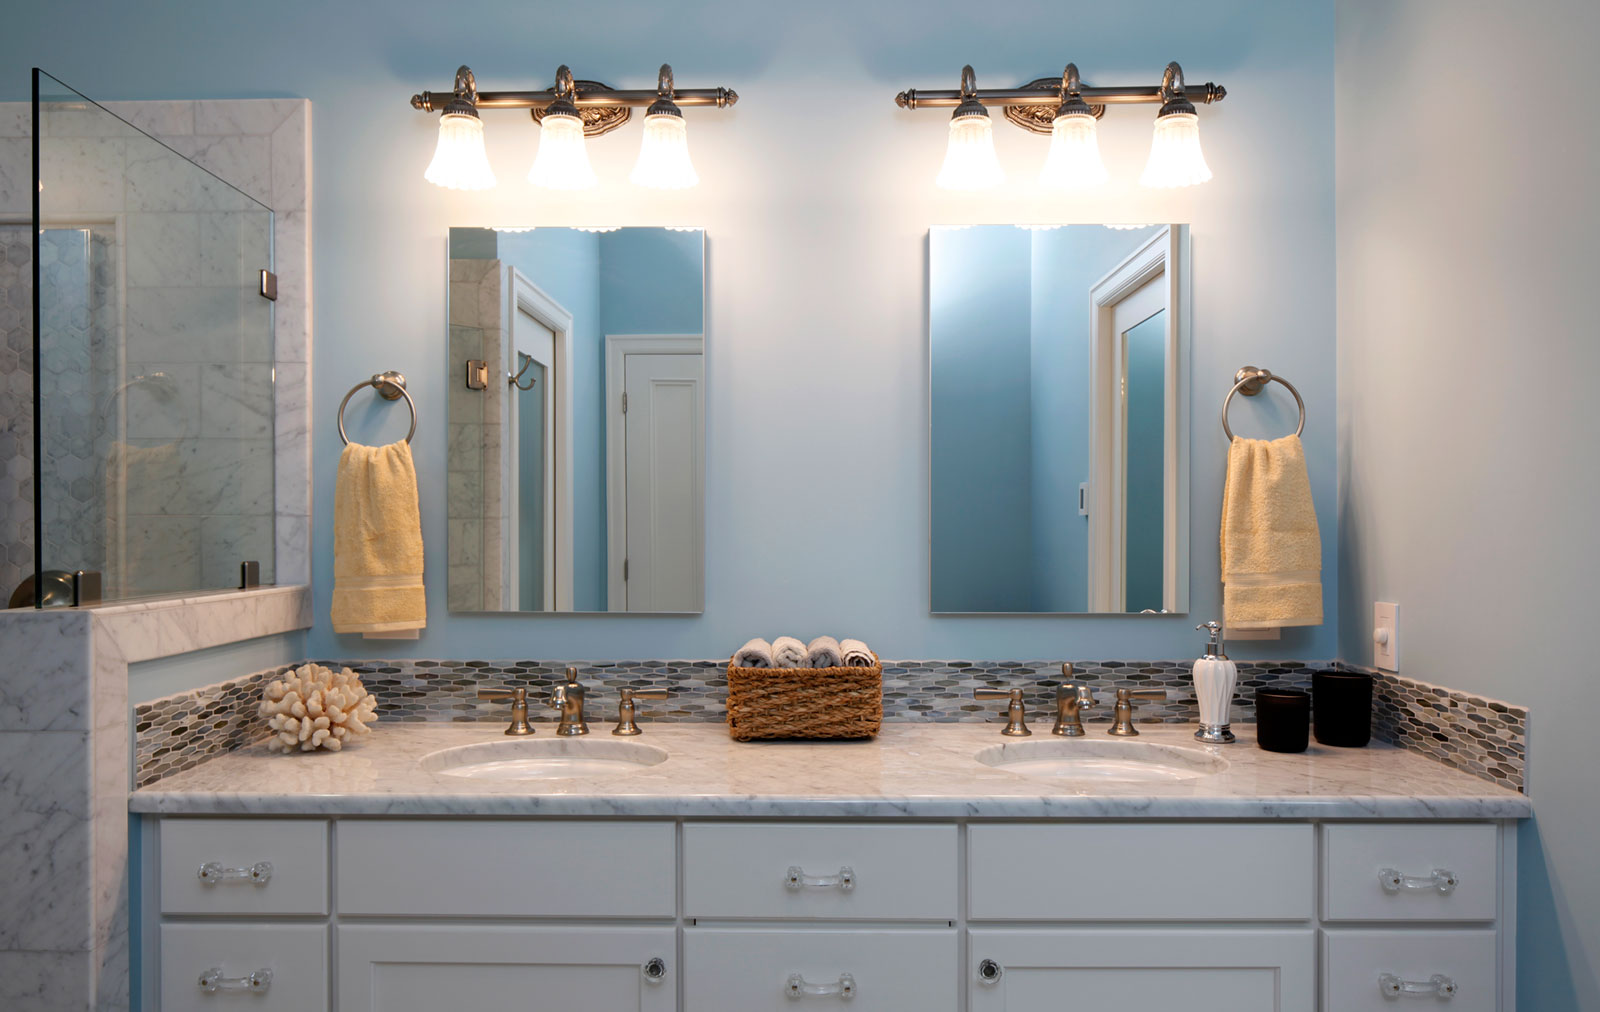 historic home bathroom remodel - Henderer Design + Build, Corvallis OR